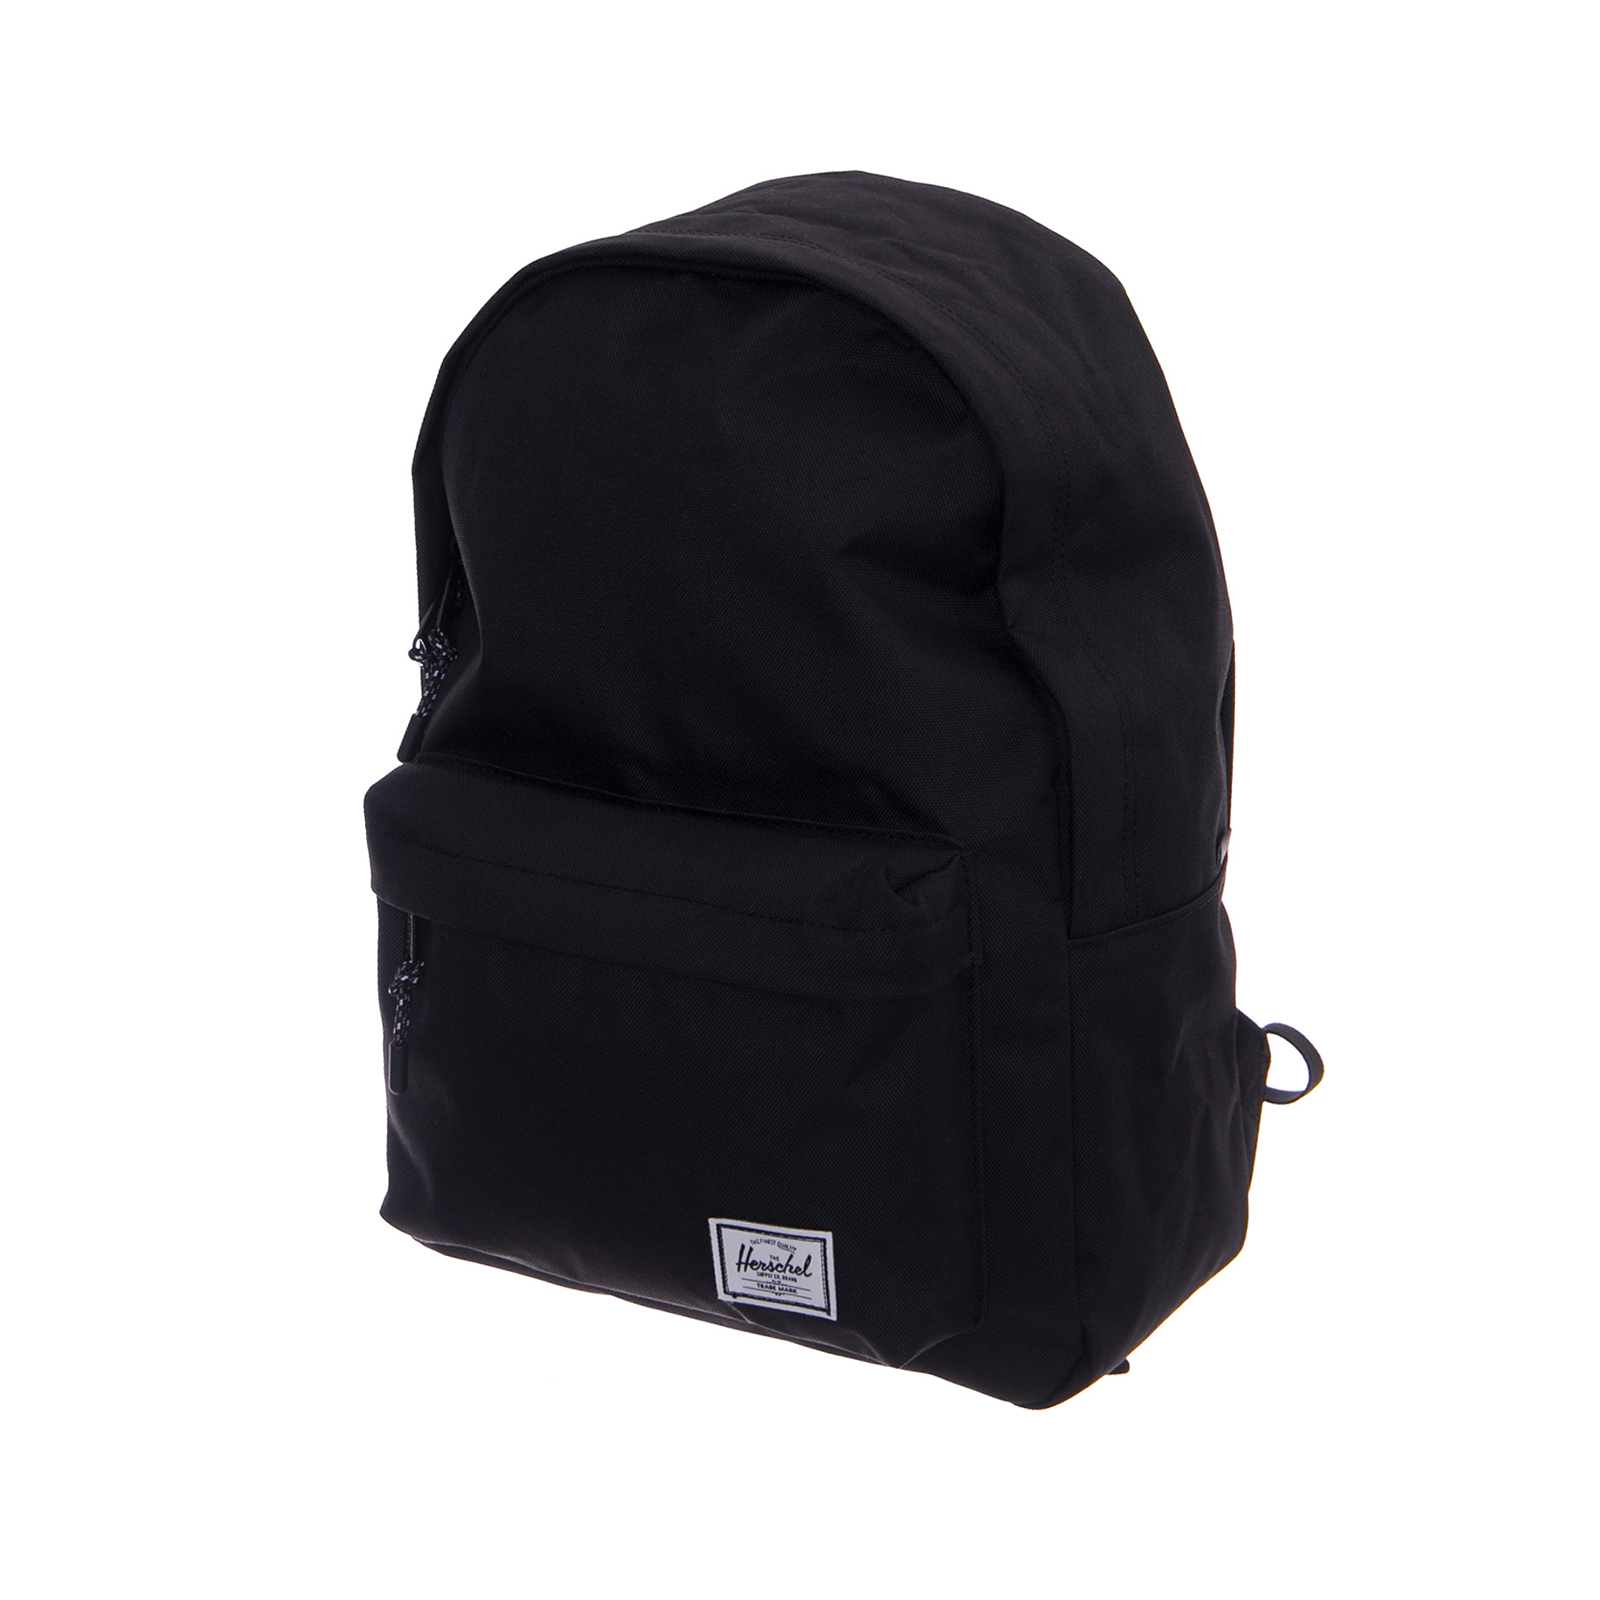 80f4f0e3421c Herschel Classic Mid-volume Backpack - Black for sale online